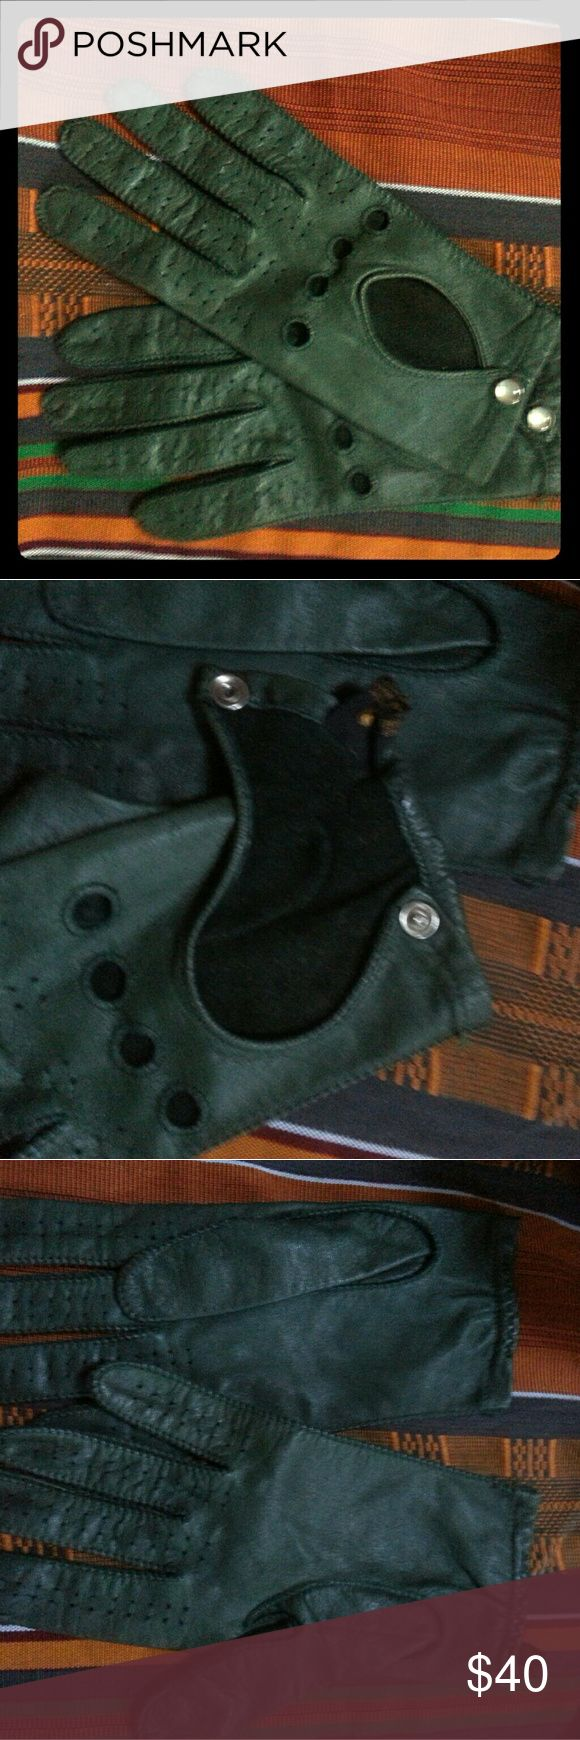 Kid leather driving gloves - Vintage Green Leather Driving Gloves Womens M